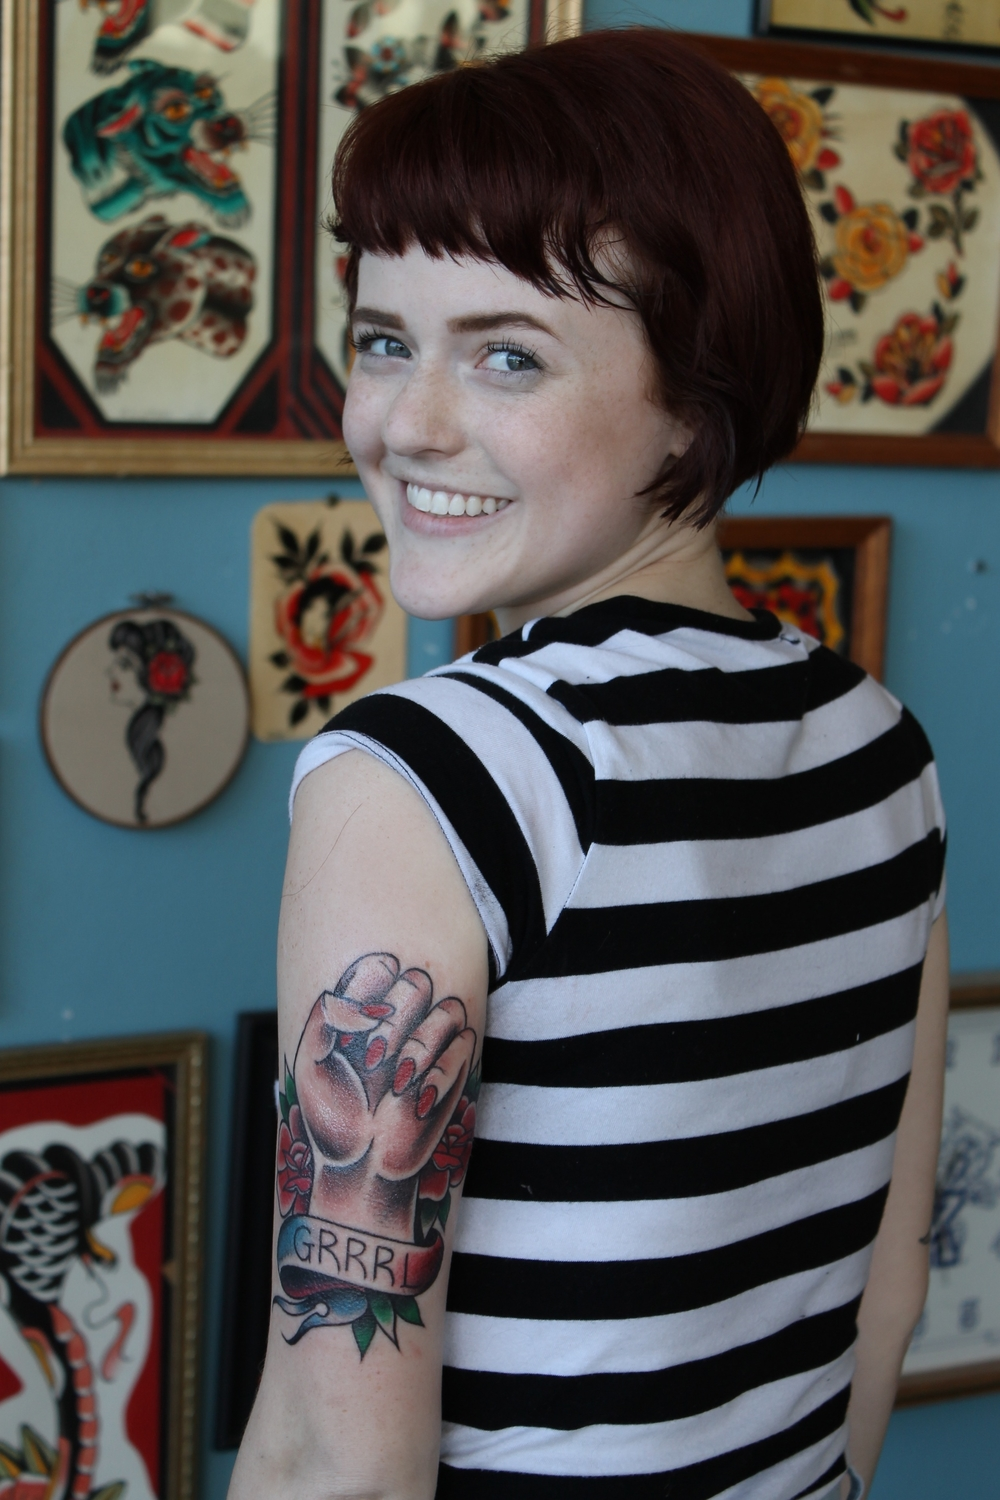 Rachel with her new tattoo from Nate Corder.